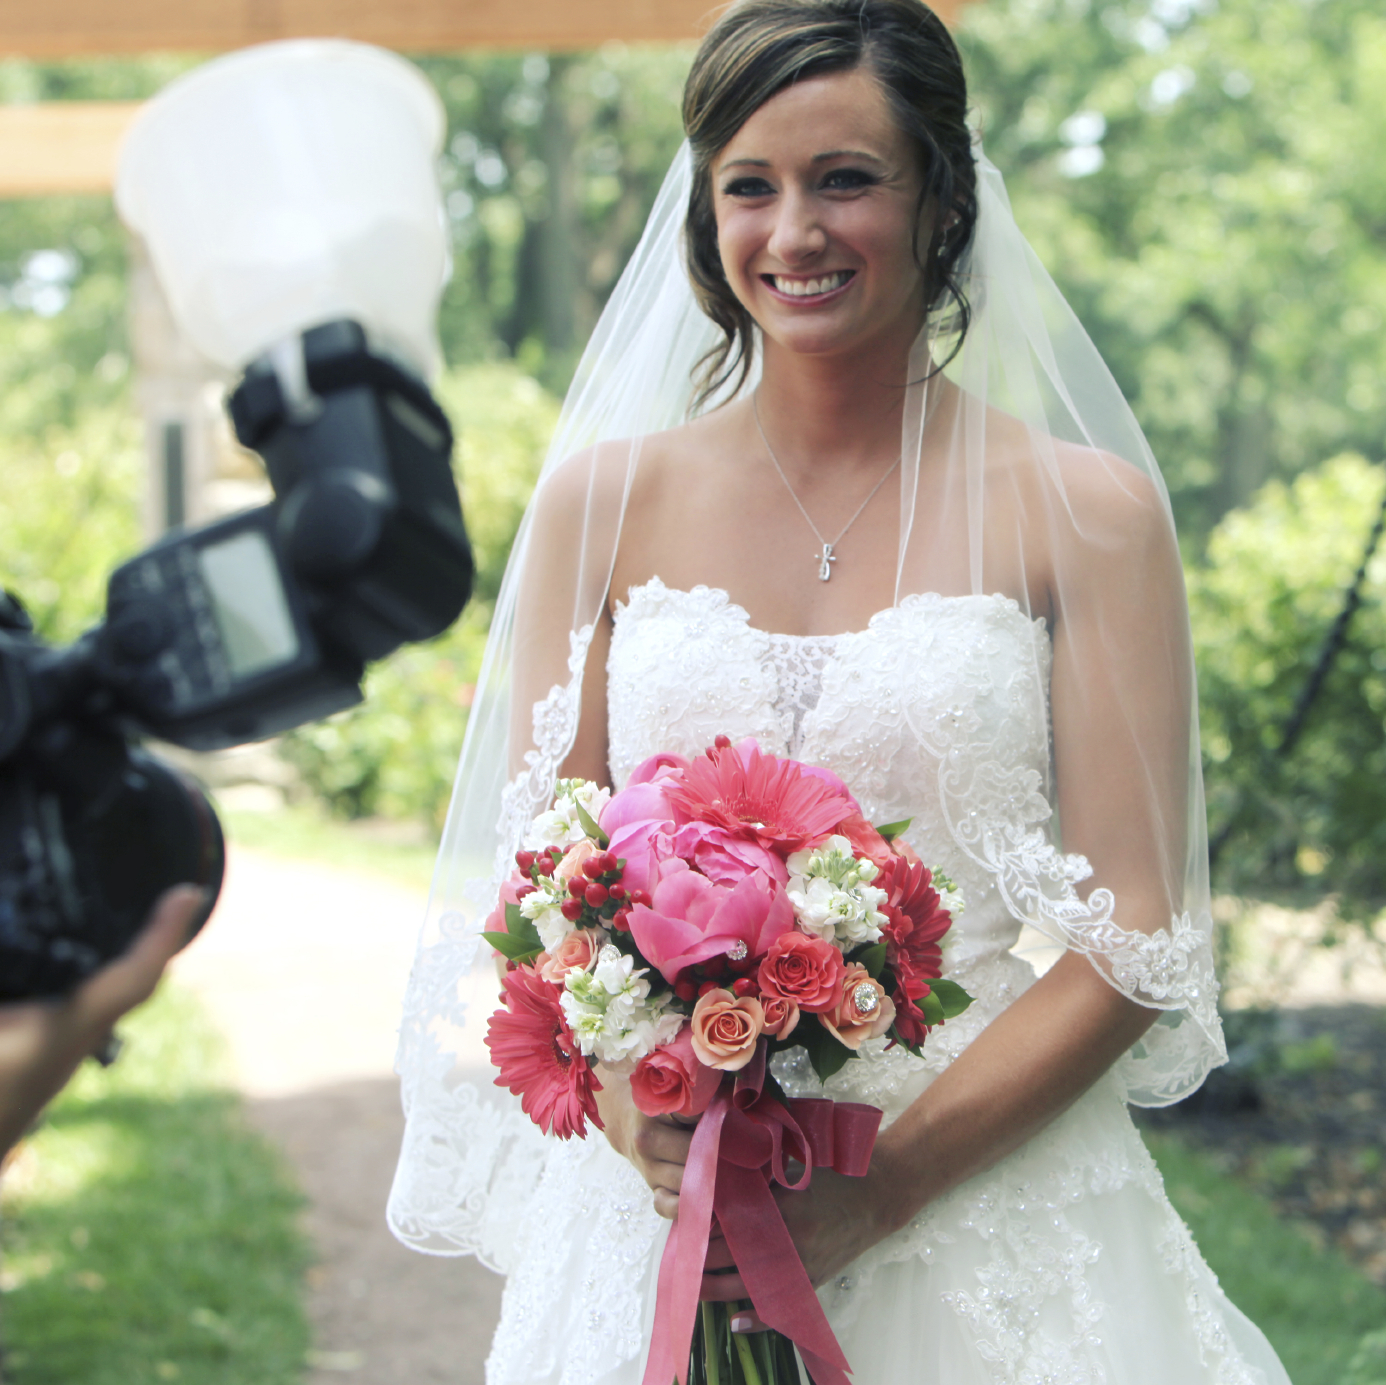 Making a wedding video? Compare 3 video editing tools.